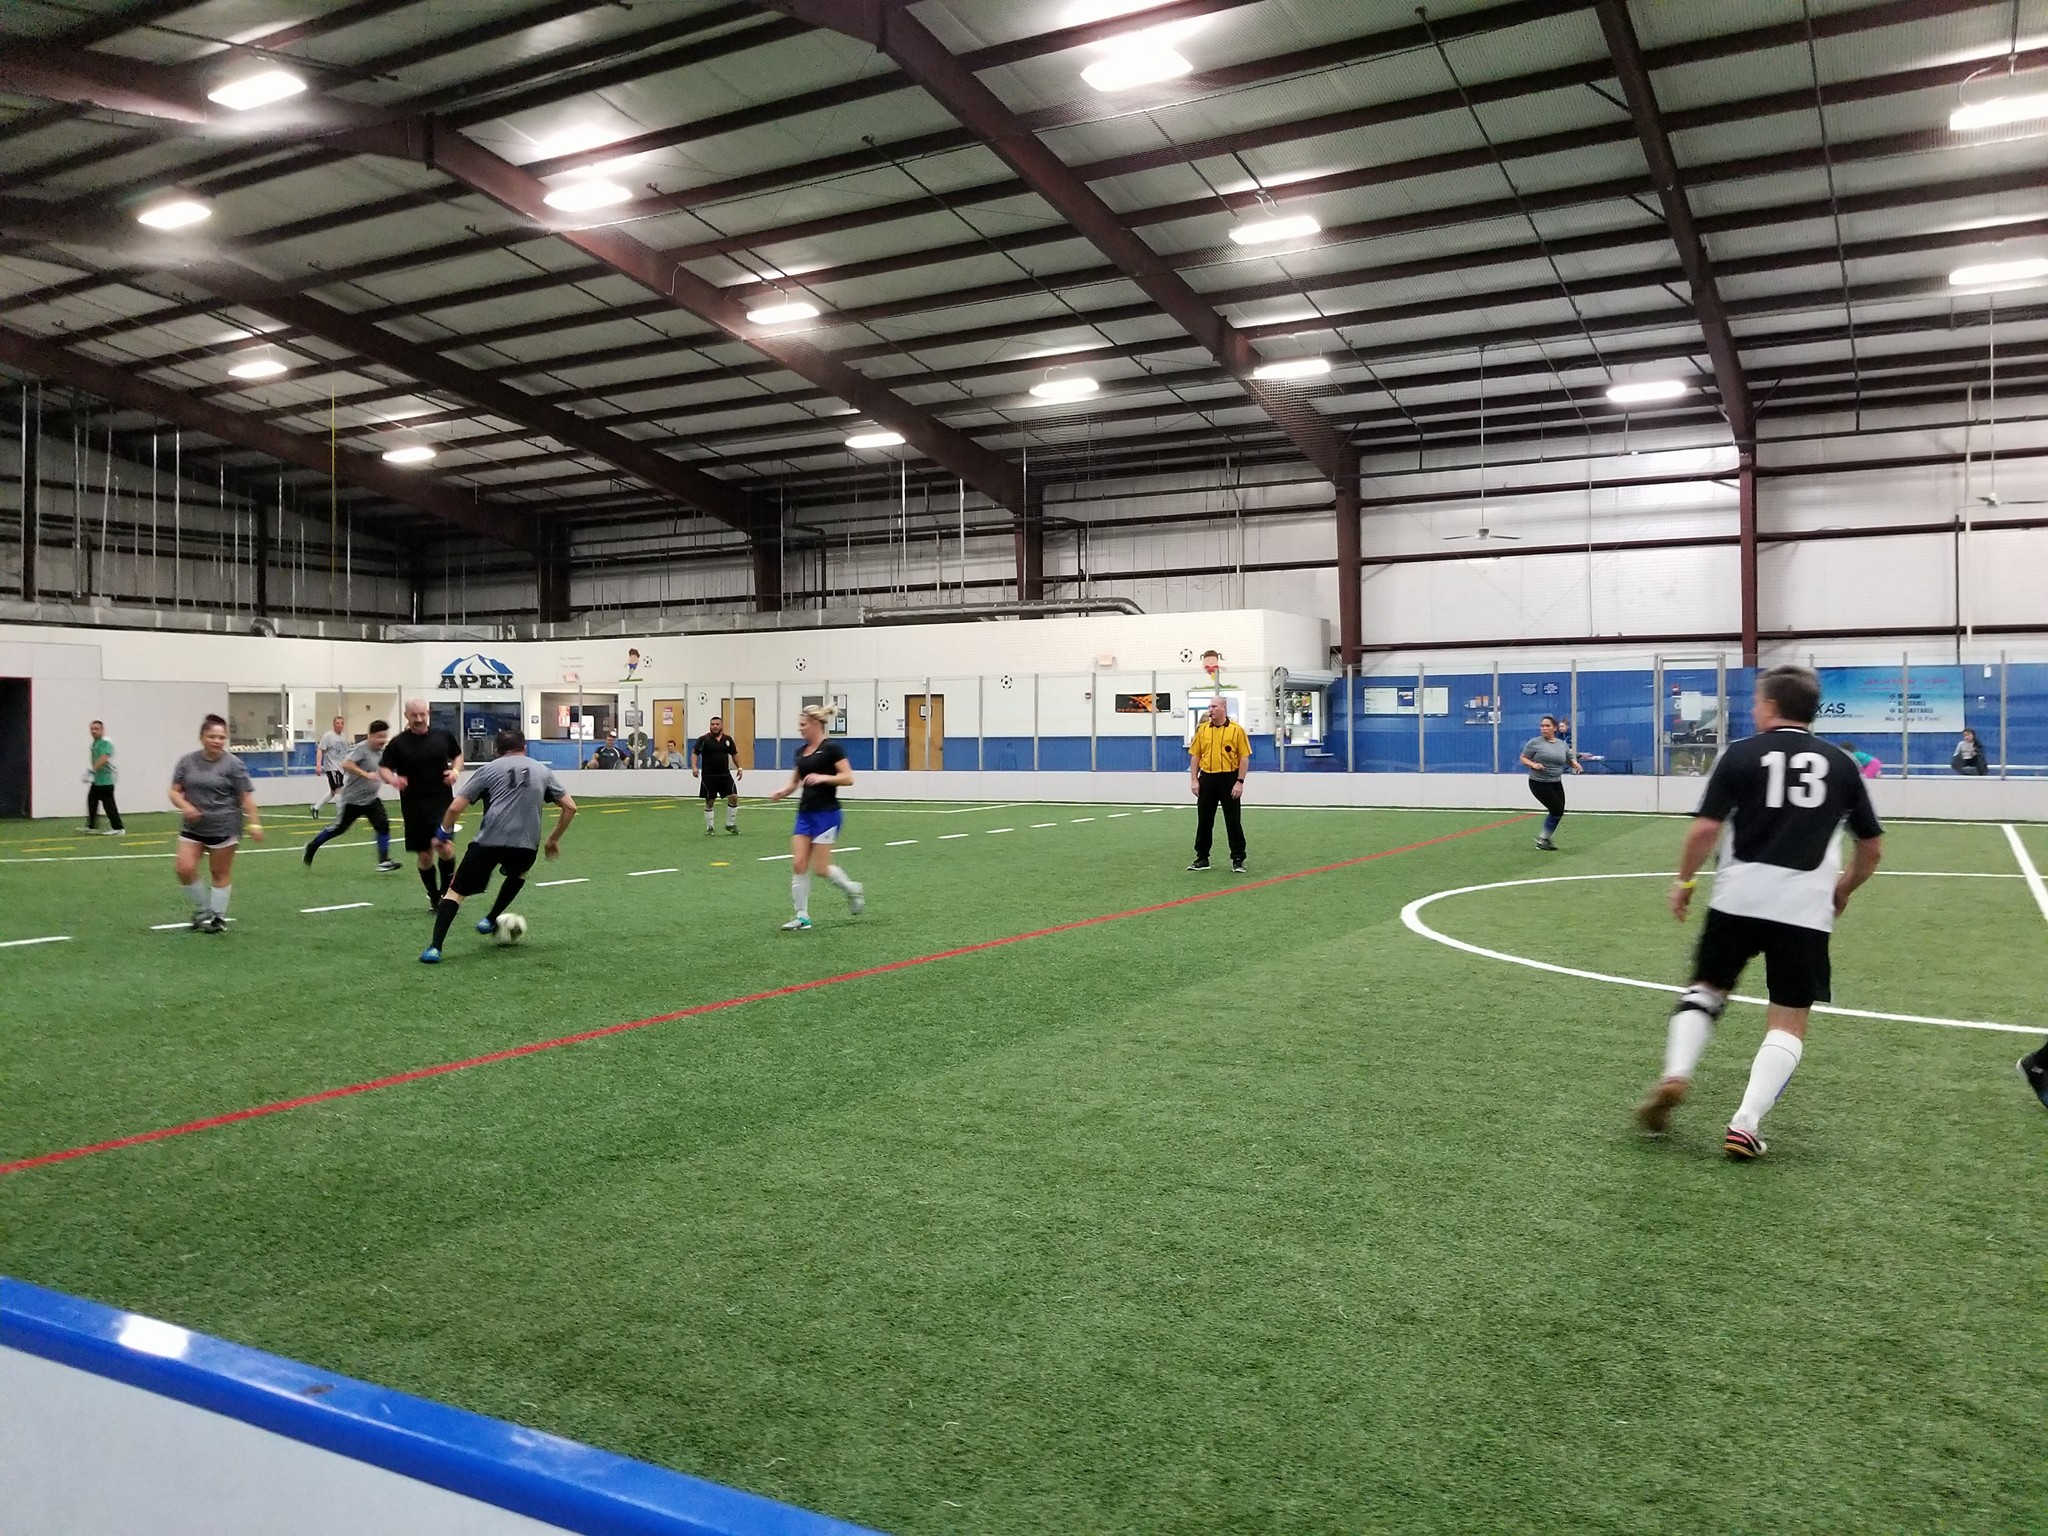 indoor soccer - Lunchtime Soccer in North Texas